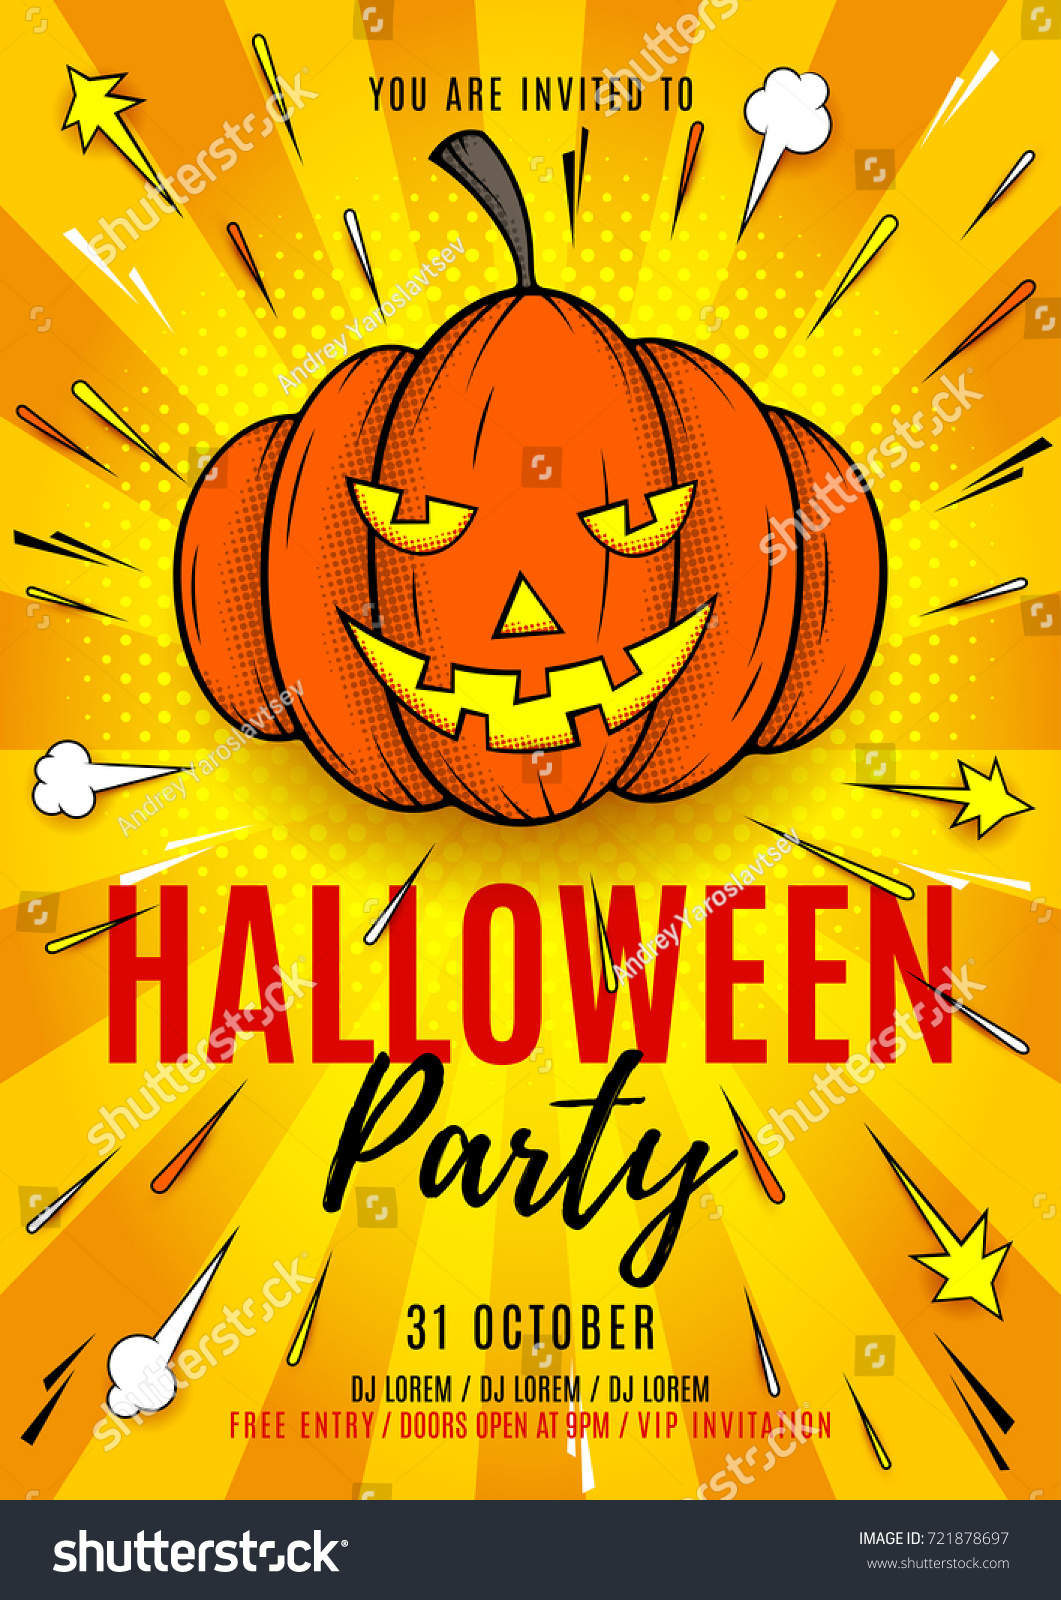 Halloween Party Flyer Template Vector Illustration Stock Vector